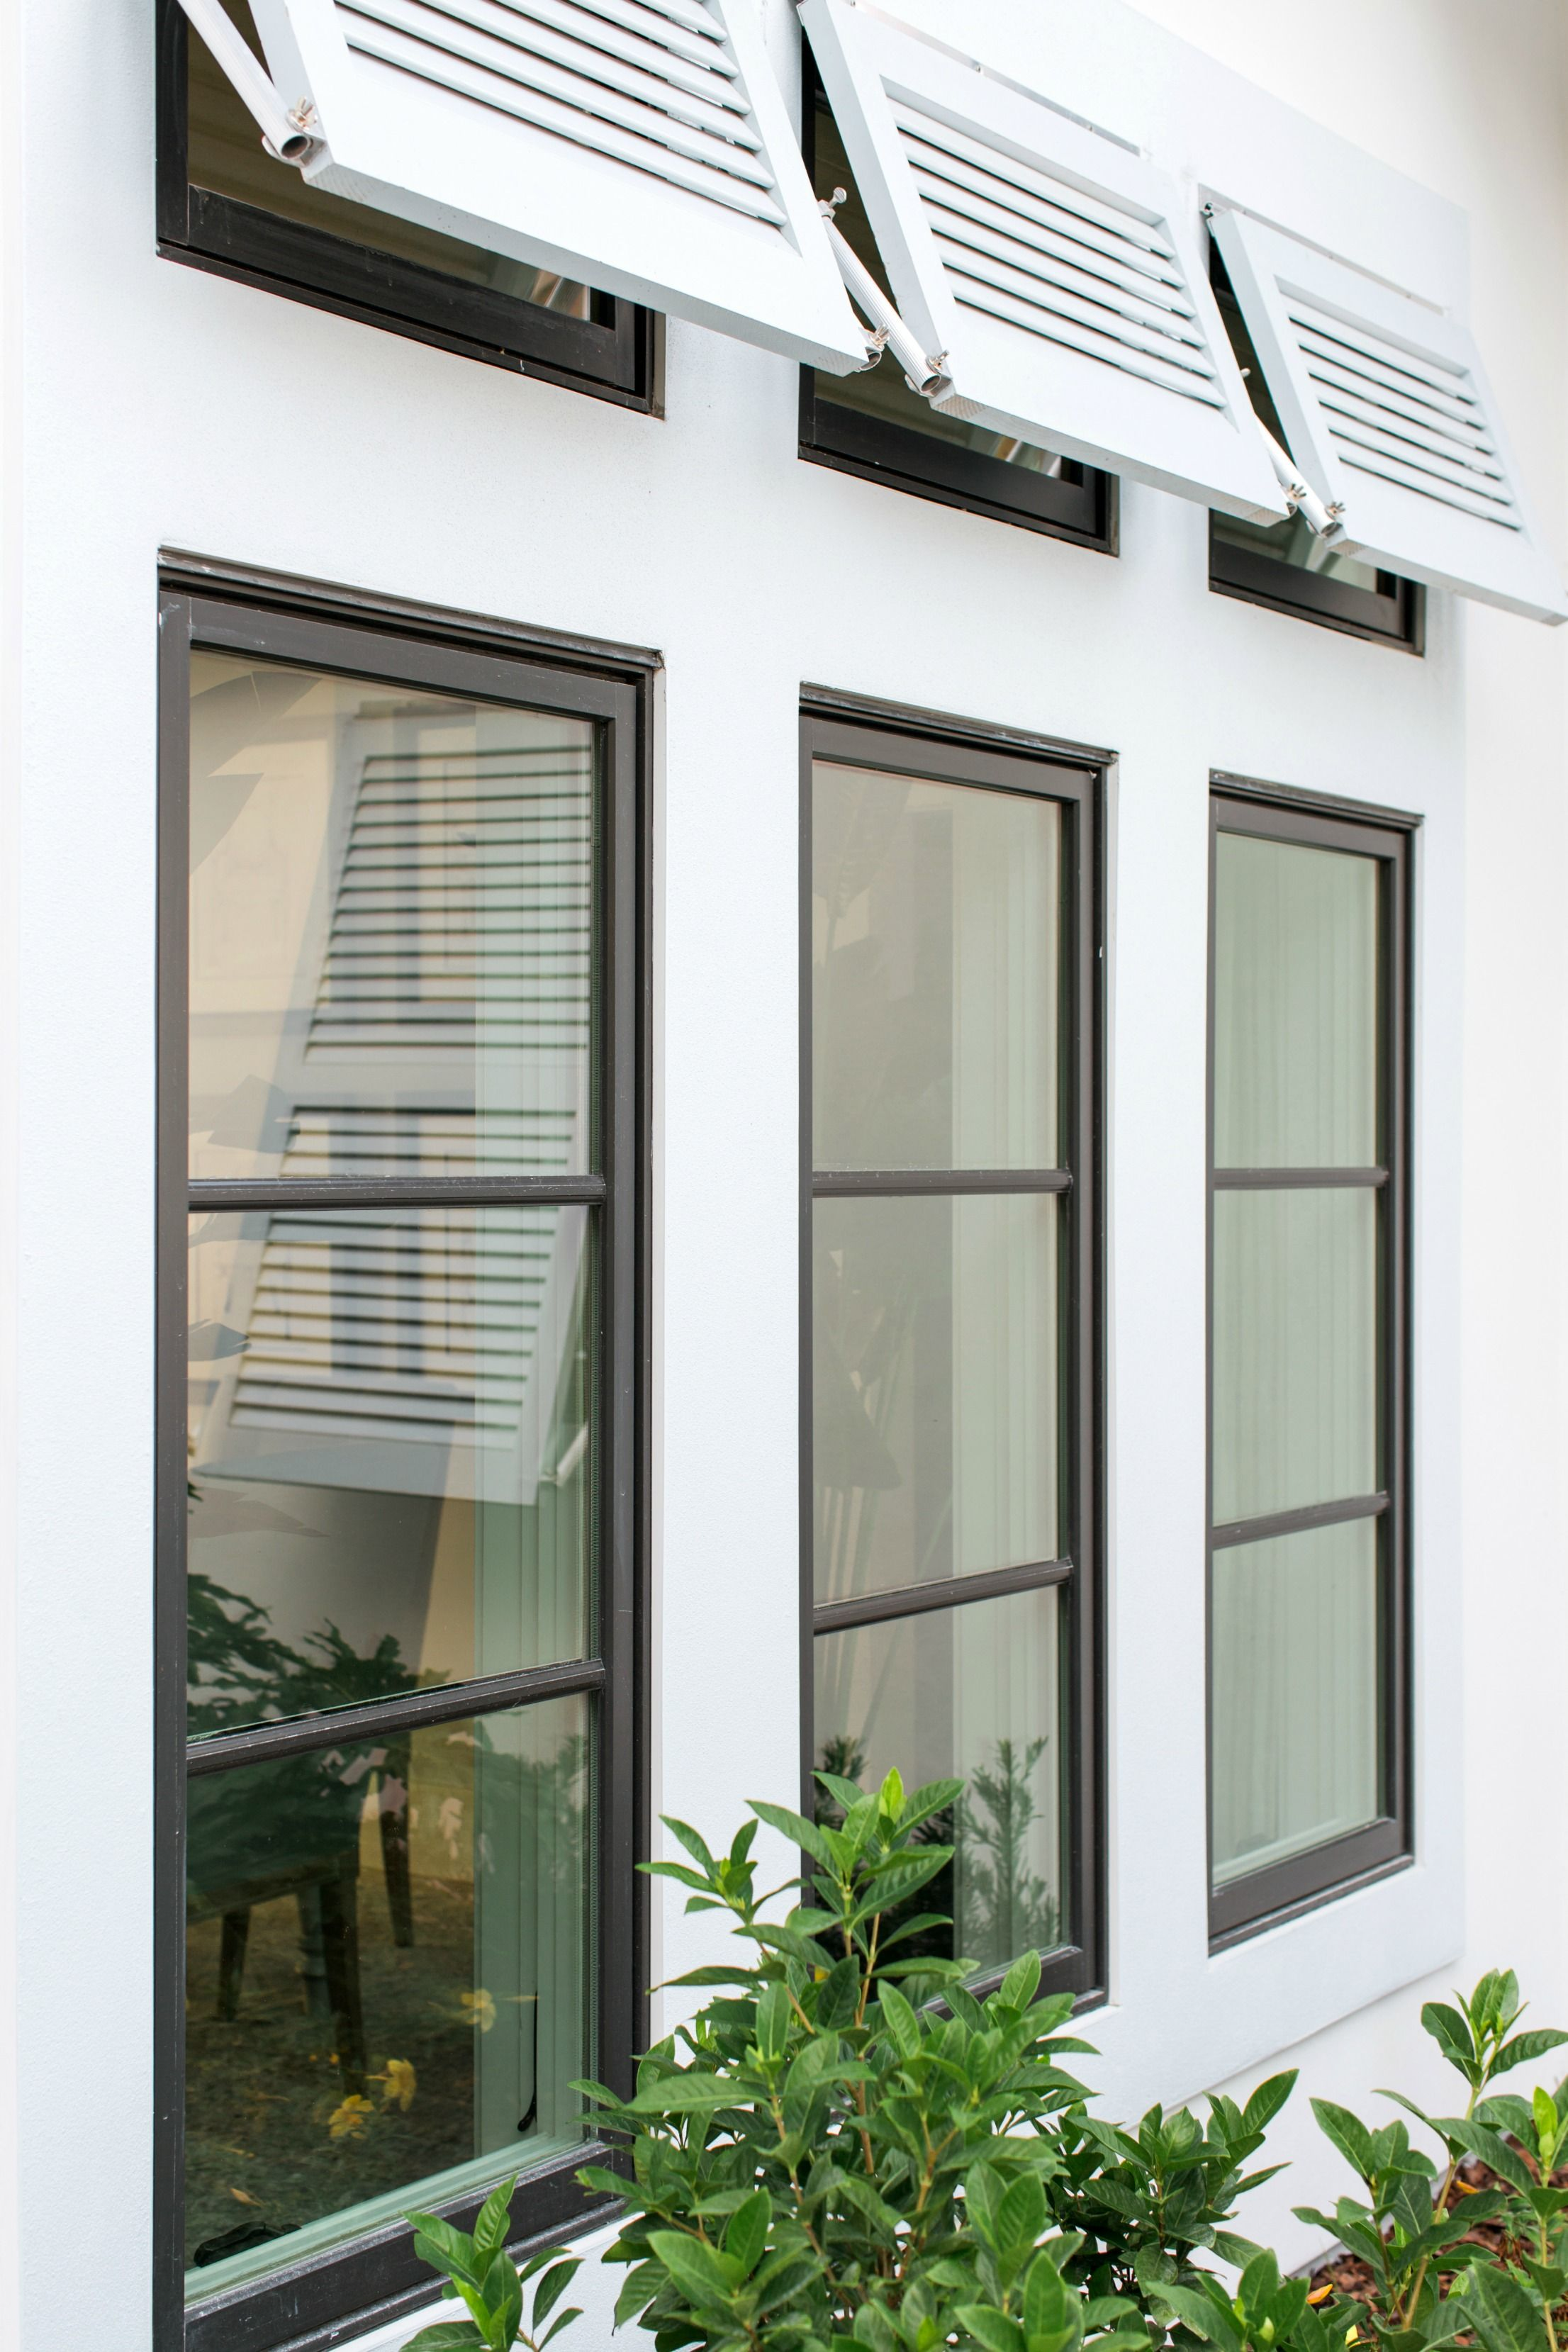 JELD WEN Custom clad wood windows and patio doors make a signature